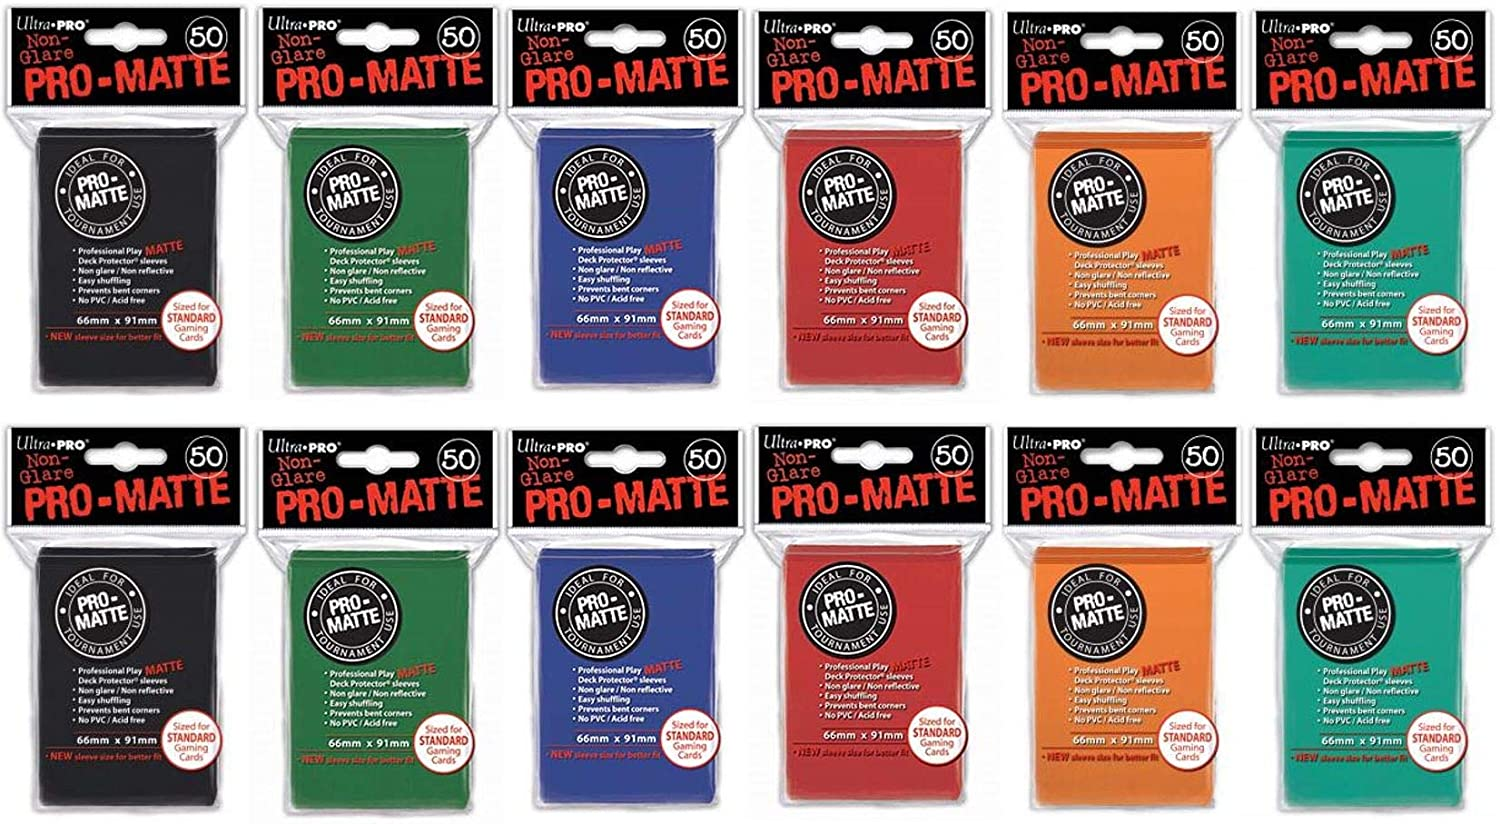 600 Ultra Pro Pro-Matte Deck Protector Sleeves